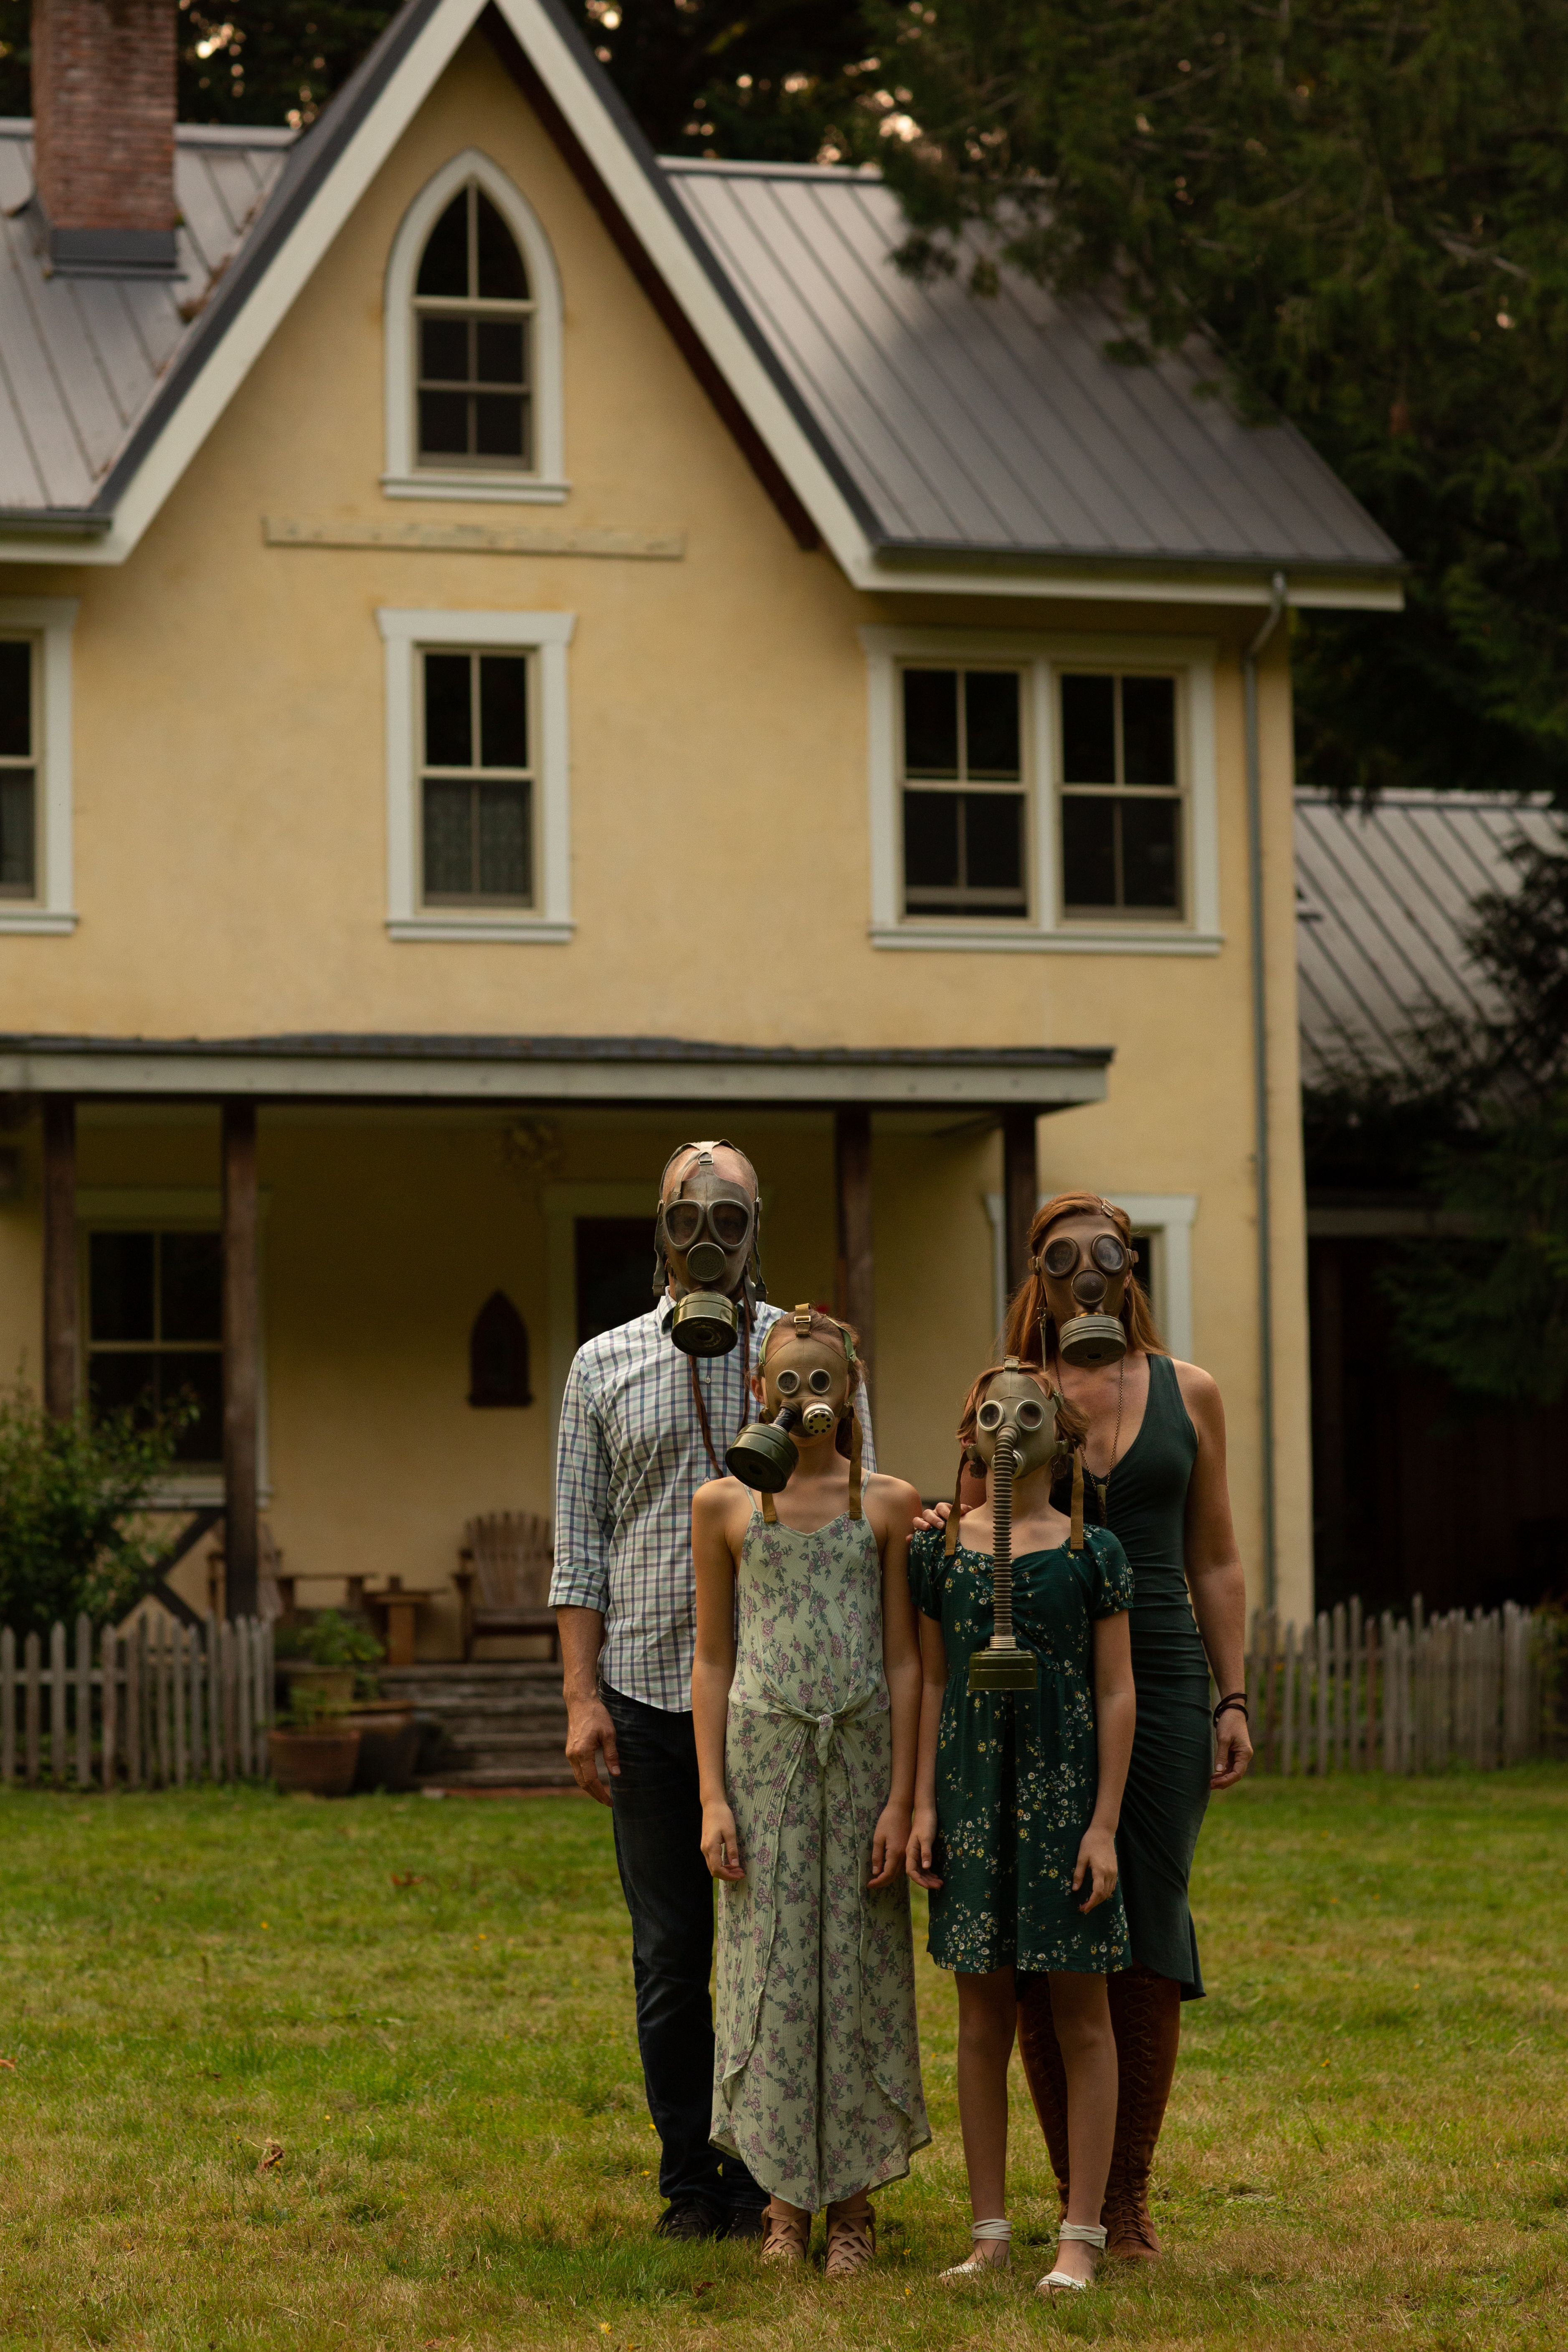 Youngblood Family - 2020 American Gothic